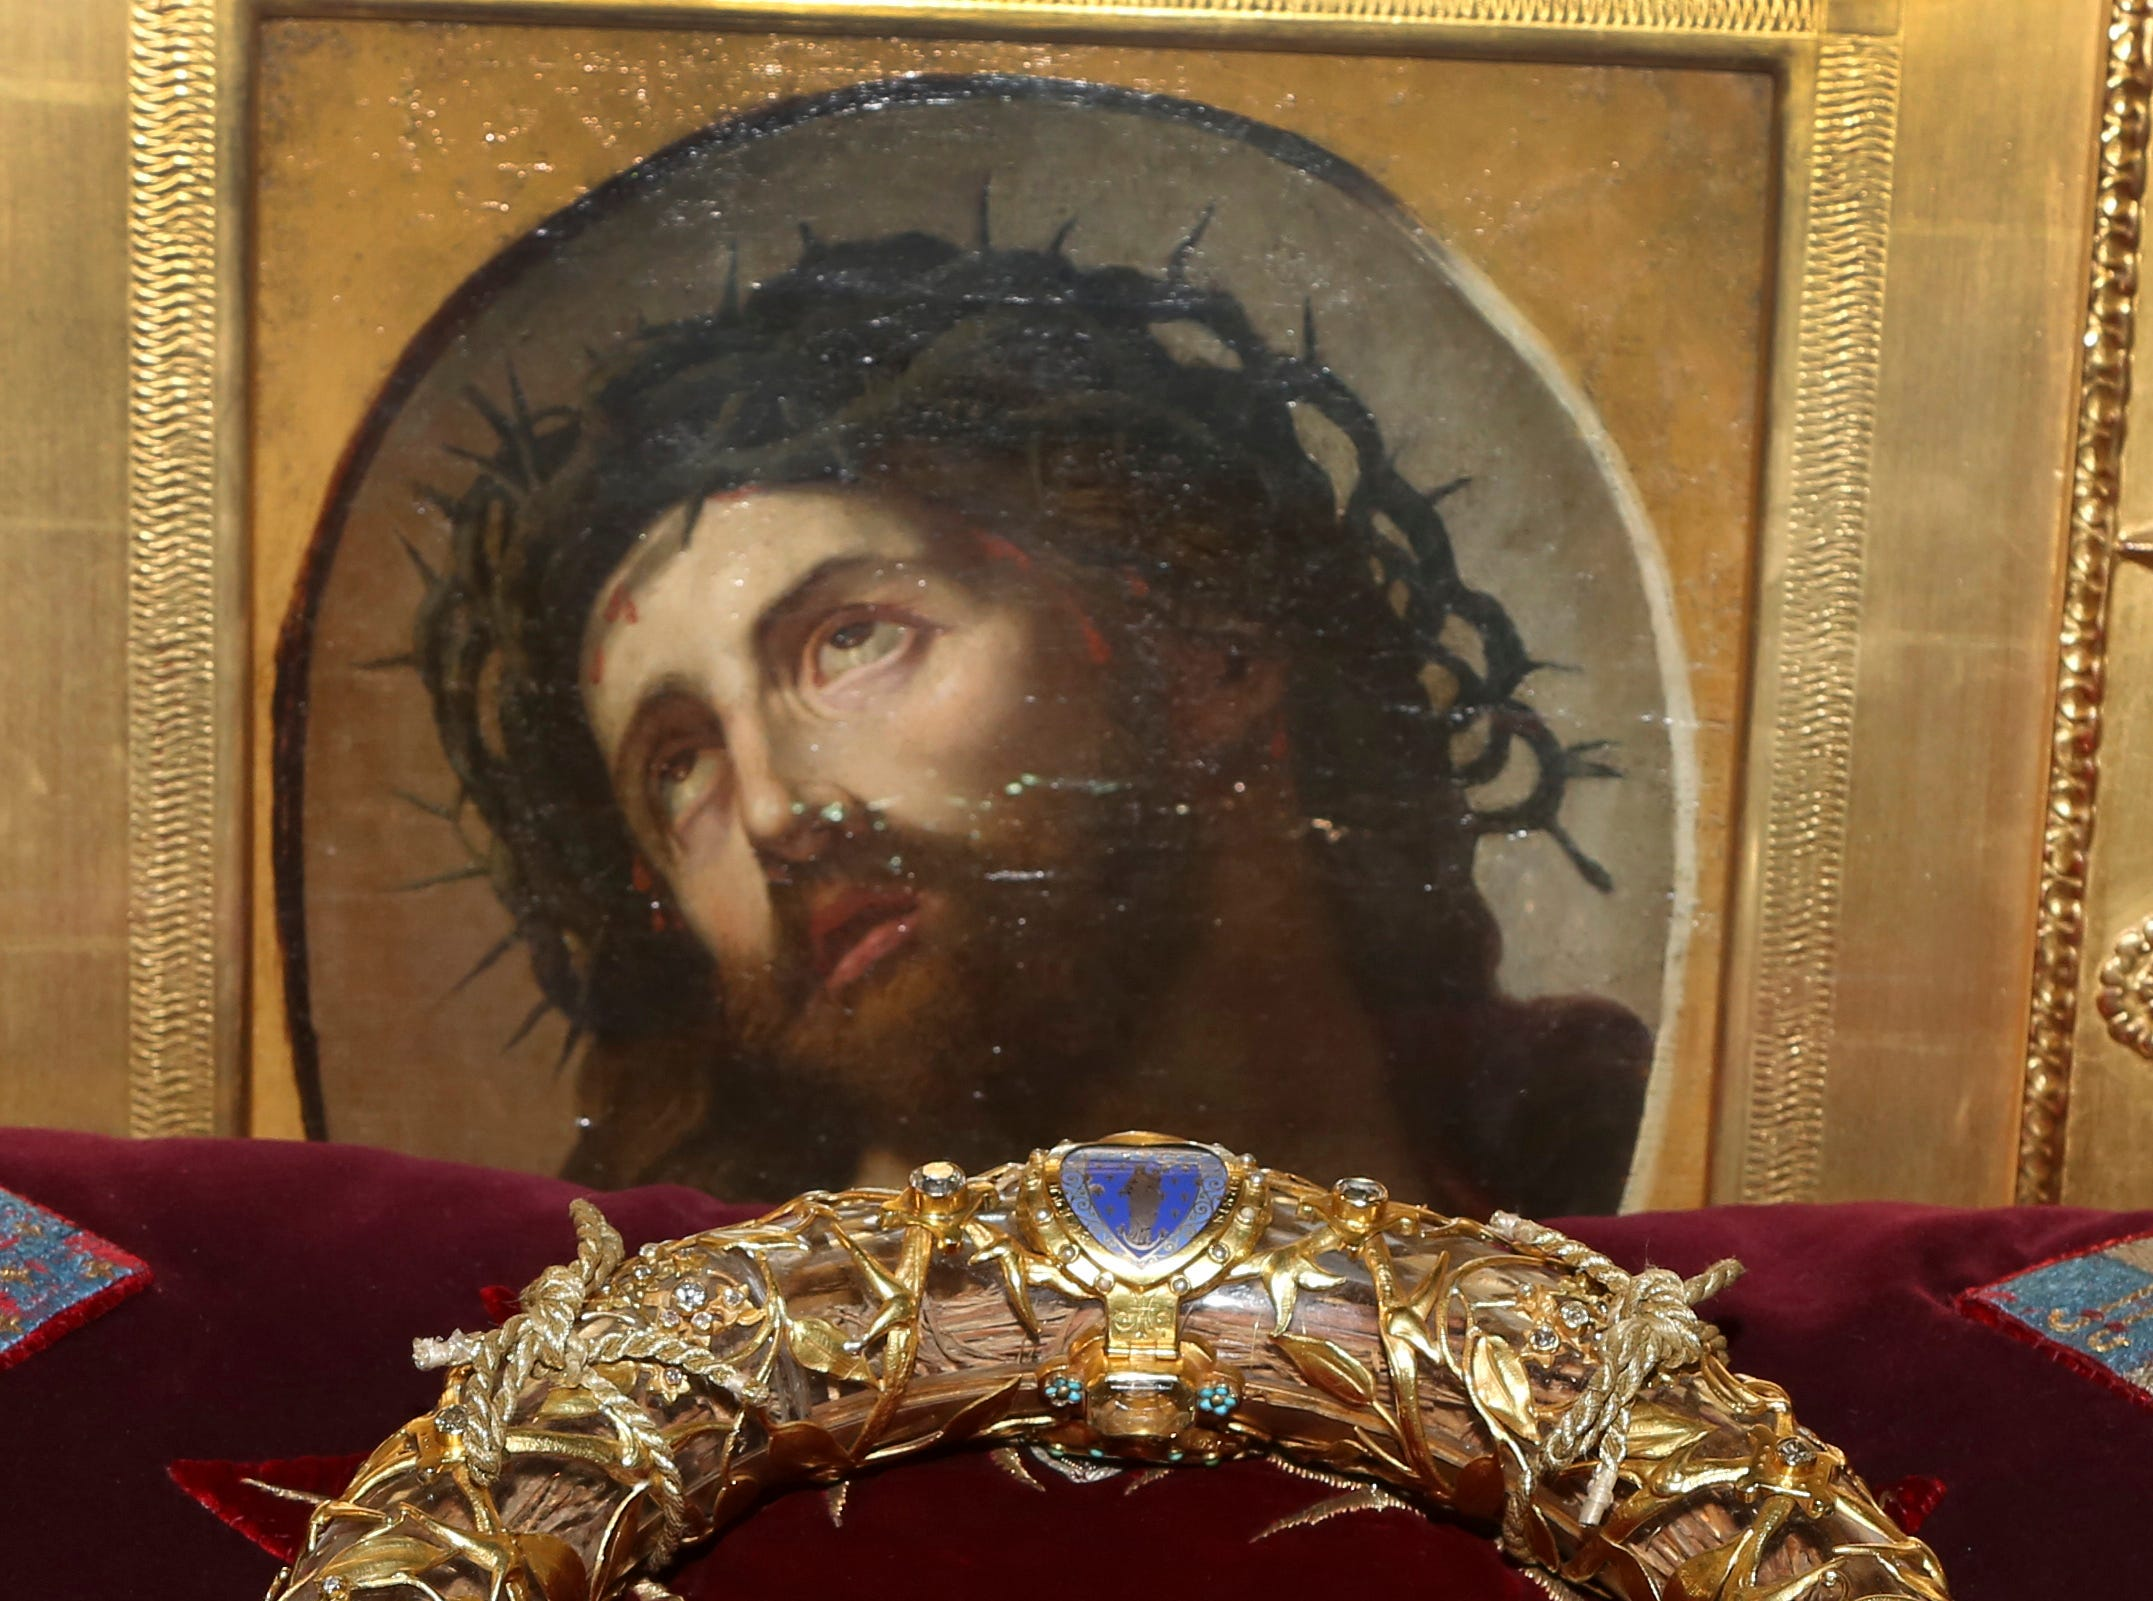 """FILE - In this Friday March 21, 2014 file photo a crown of thorns which was believed to have been worn by Jesus Christ and which was bought by King Louis IX in 1239 is presented at Notre Dame Cathedral in Paris. Paris' mayor, Anne Hidalgo, said a significant collection of art and holy objects inside the church had been recovered from the fire at Notre Dame cathedral. In a tweet later, she thanked firefighters and others who formed a human chain to save artifacts. """"The crown of thorns, the tunic of St. Louis and many other major artifacts are now in a safe place,"""" she wrote. (AP Photo/Remy de la Mauviniere, File)"""